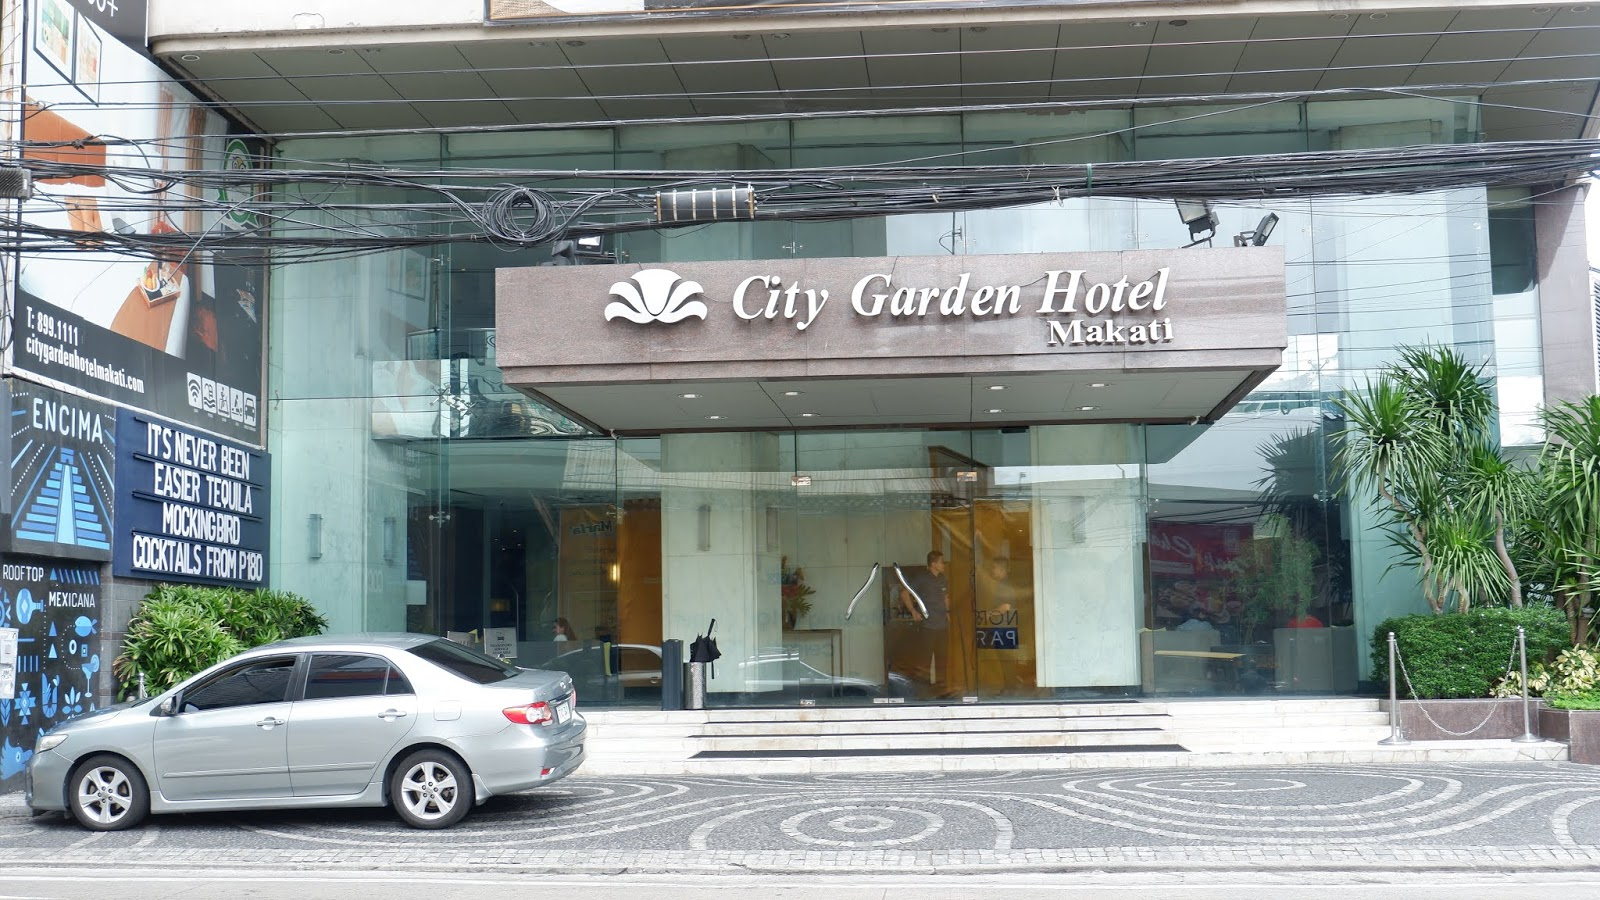 I Was Looking For A Good Hotel That Is Within Budget And Situated In A  Place Within Easy Reach Of Makatiu0027s Nightlife. CITY GARDEN HOTEL   Makati  Met All Of ...